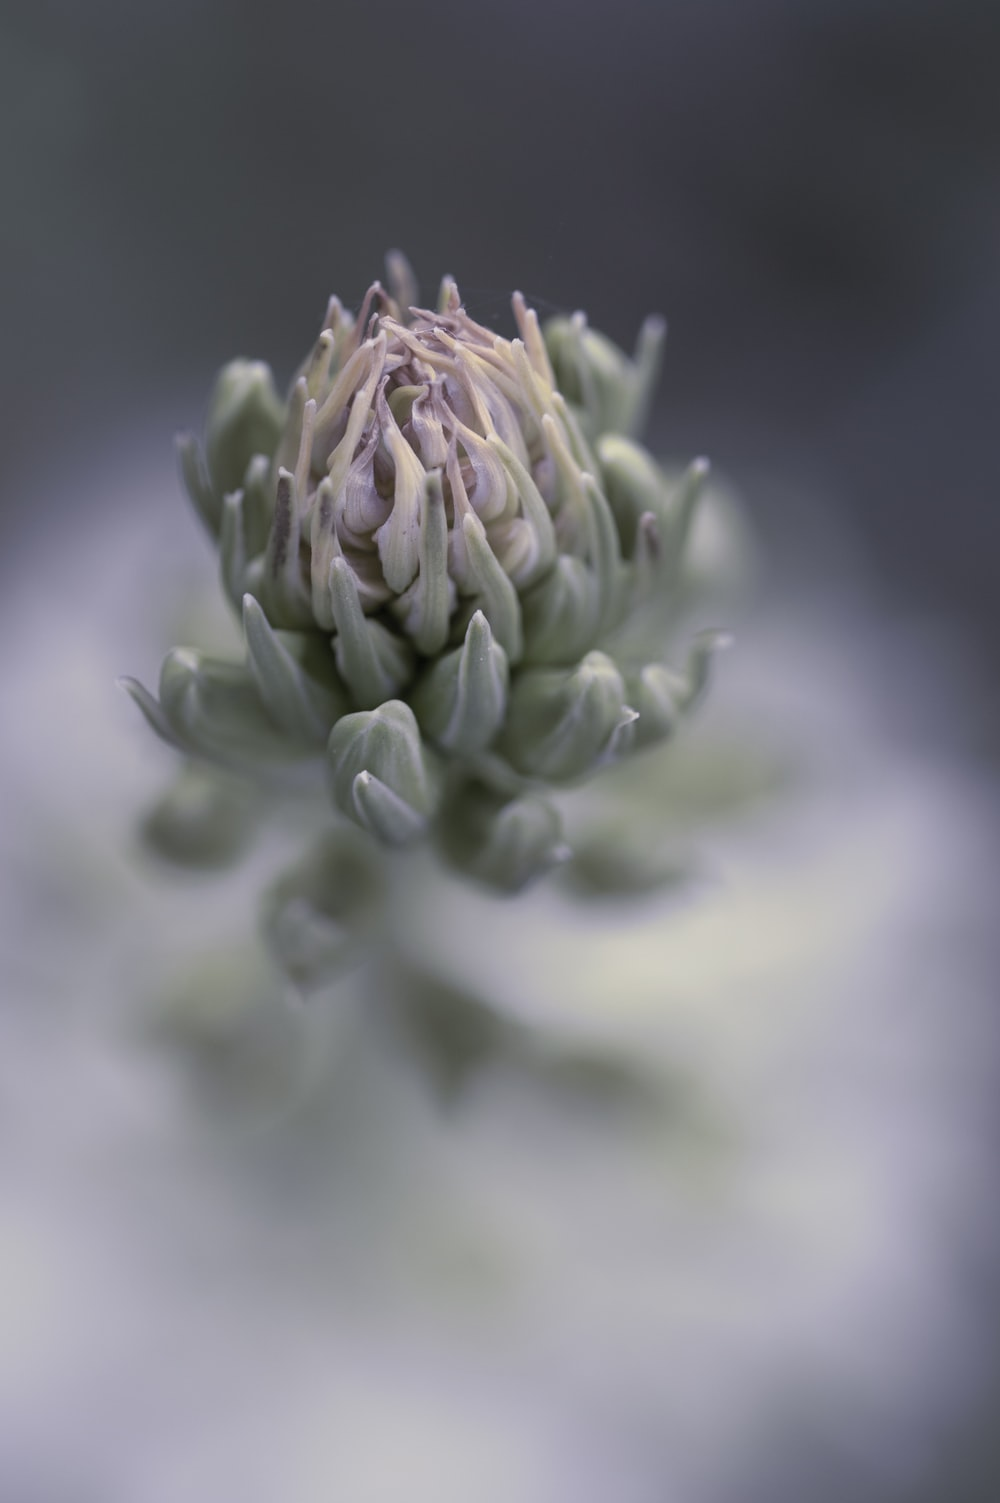 green flower bud in close up photography